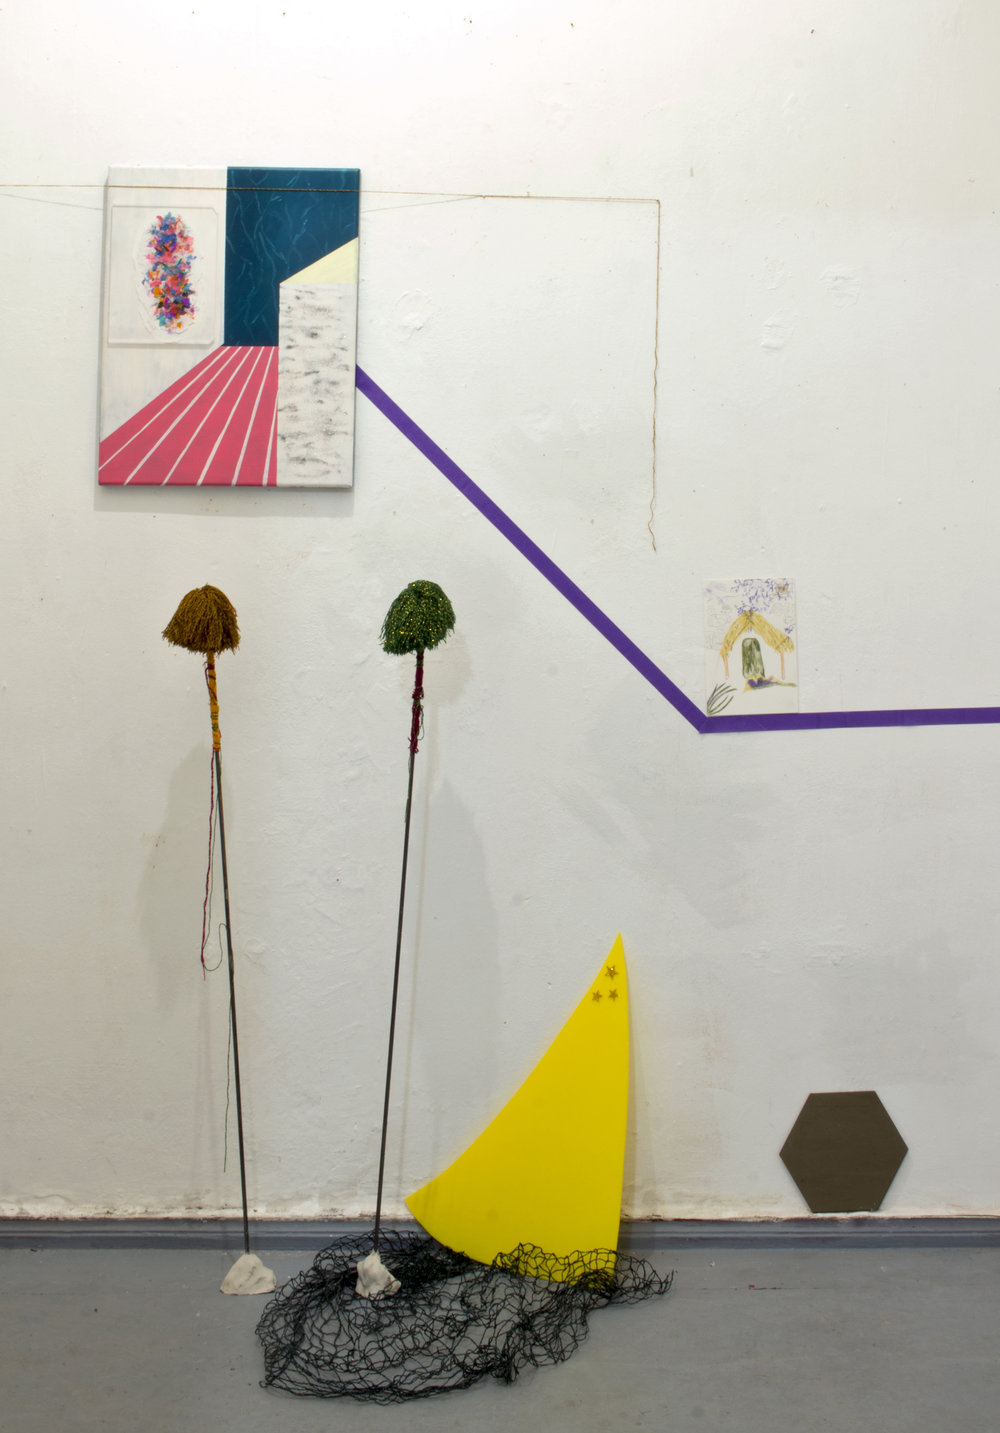 Space Invaders (Exhibition view), Salon Simelde. Works L to R: Painting by Sanne Maloe, Pom-Poms, 2016, thread from Chiapas, found rod and clay, perspex and mirror Sanne Maloe, drawing Mayan Stelae.